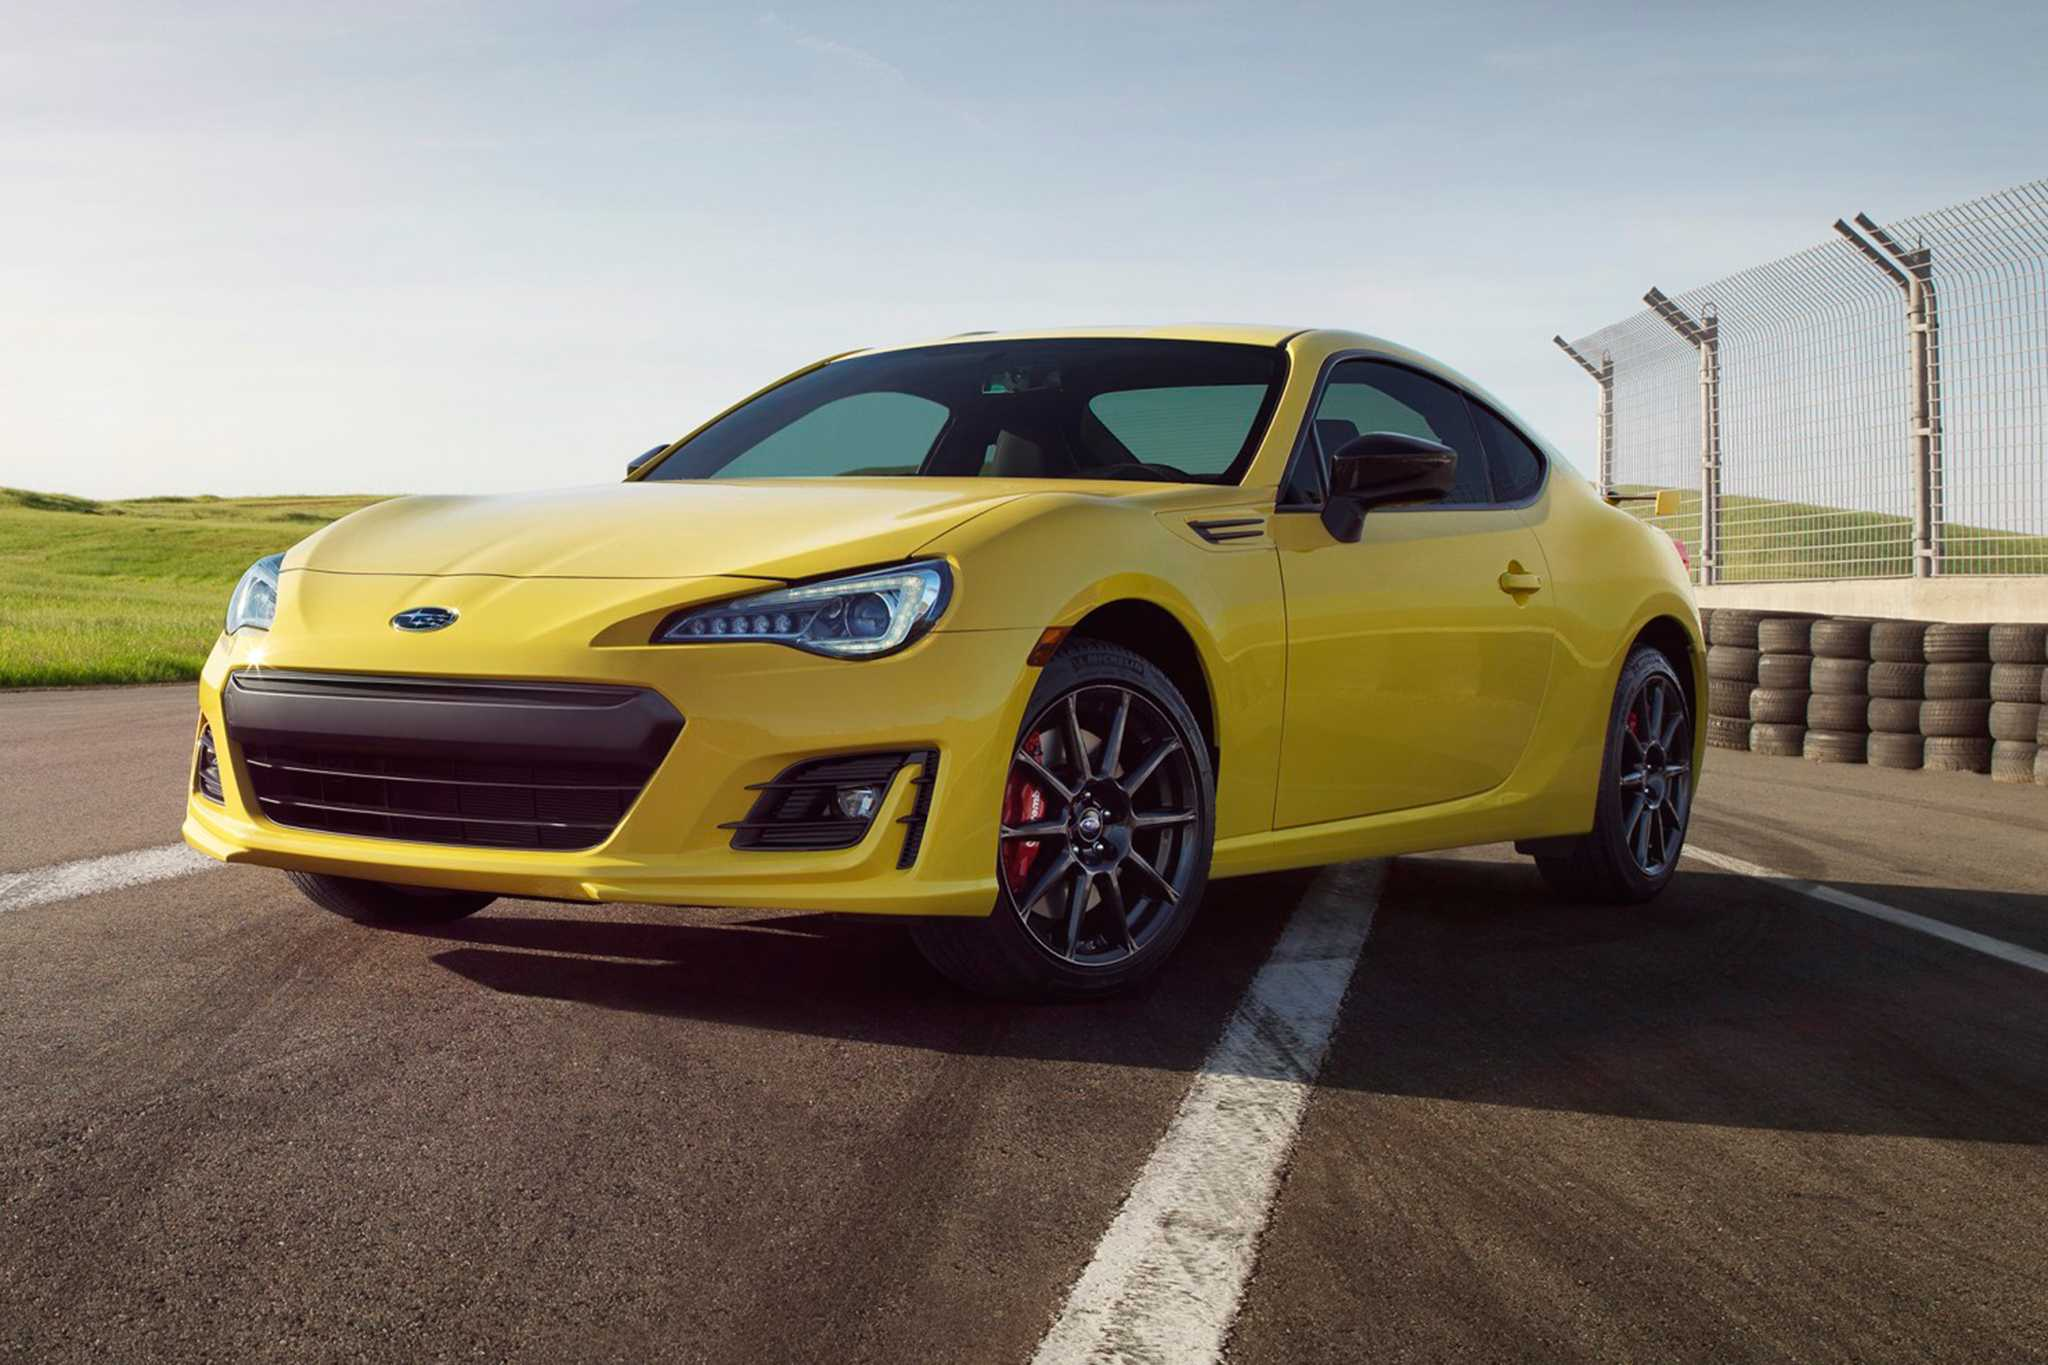 2017 Subaru BRZ Hyper Yellow Limited Edition Launched